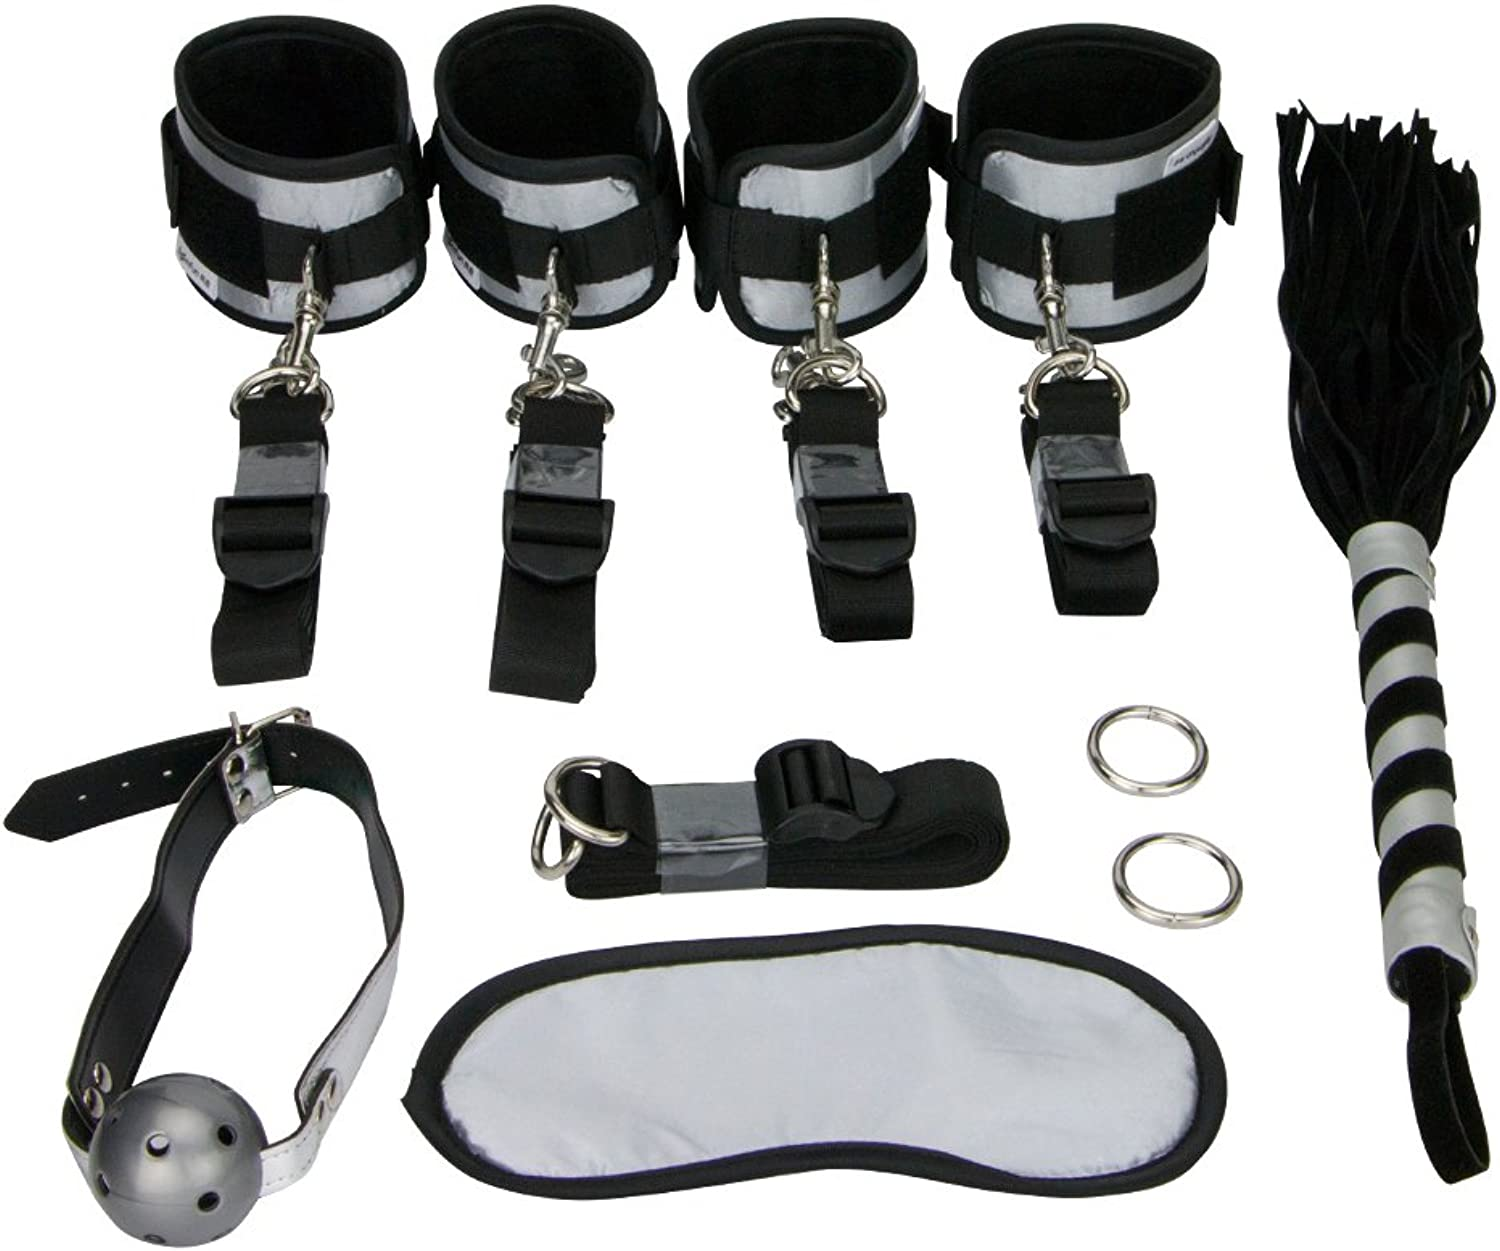 Roomfun Brand Sex Bed Bondage Restraints Set Kit Ball Gag Sex Whip Sex Mask Sex Tool With Sex Cuffs For Ankles and Wrists